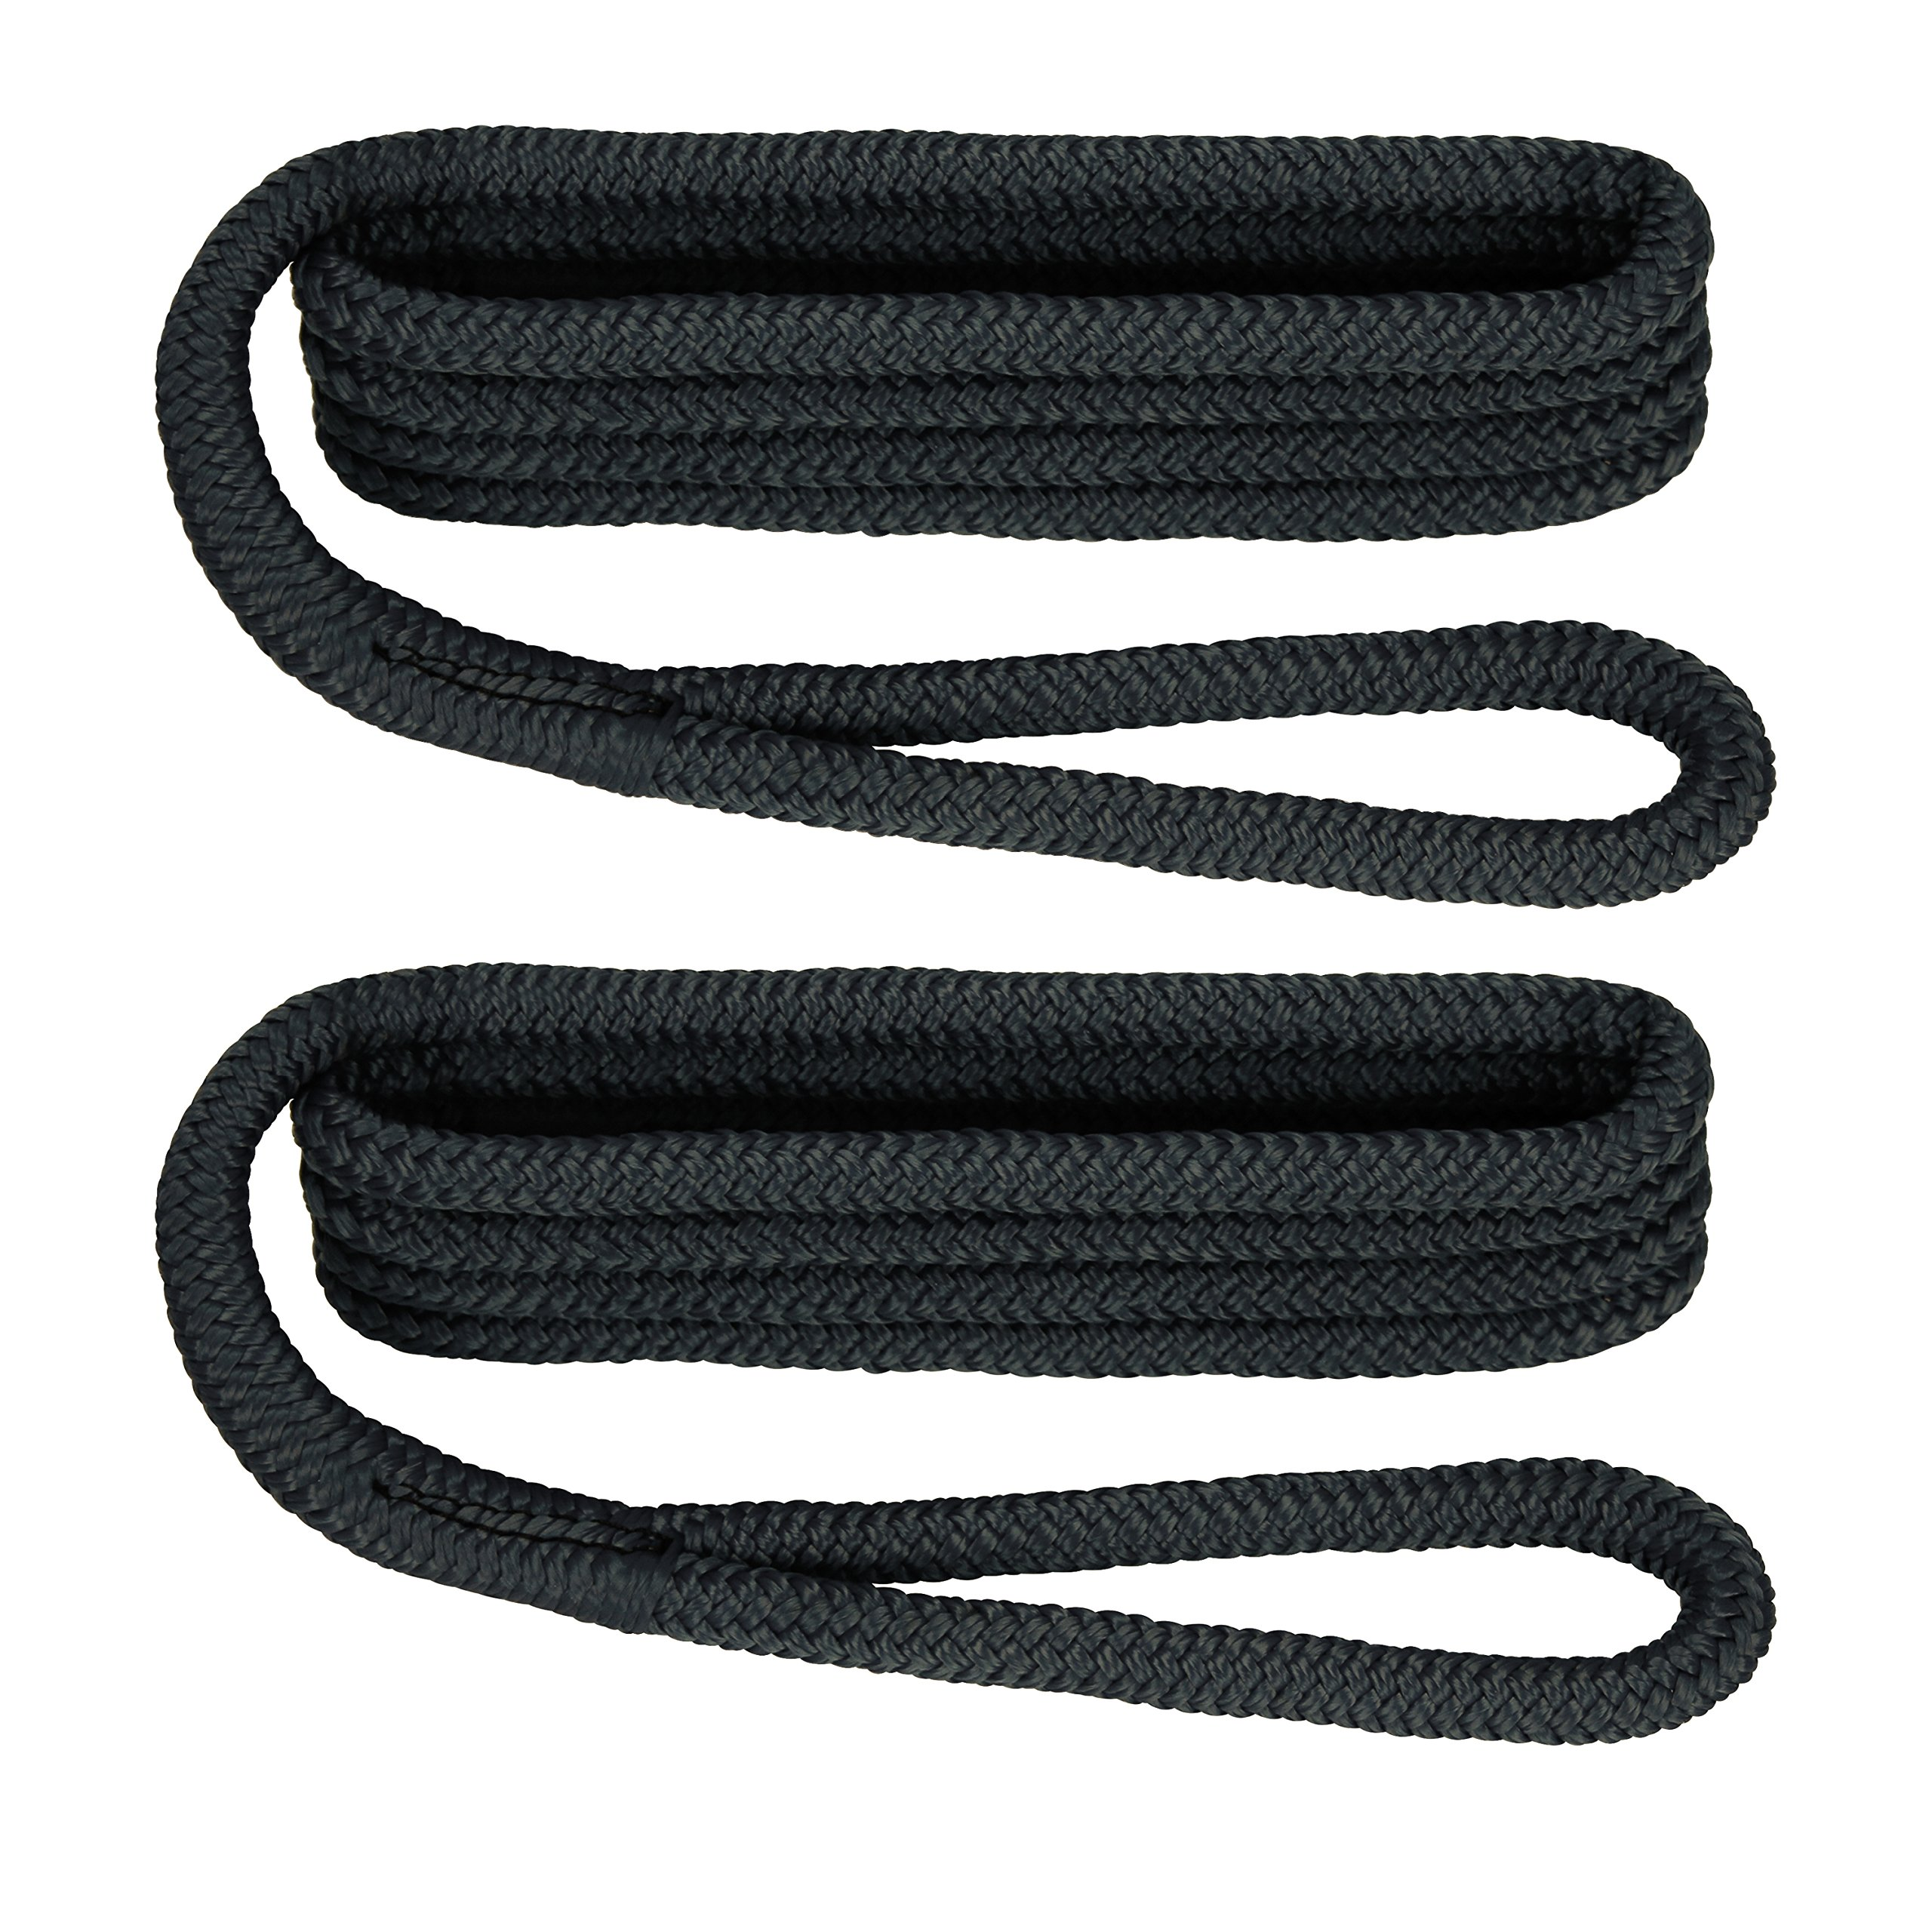 Extreme Max 3006.2168 BoatTector 3/8'' x 6' Premium Double Braid Nylon Fender Line Pair, Black by Extreme Max